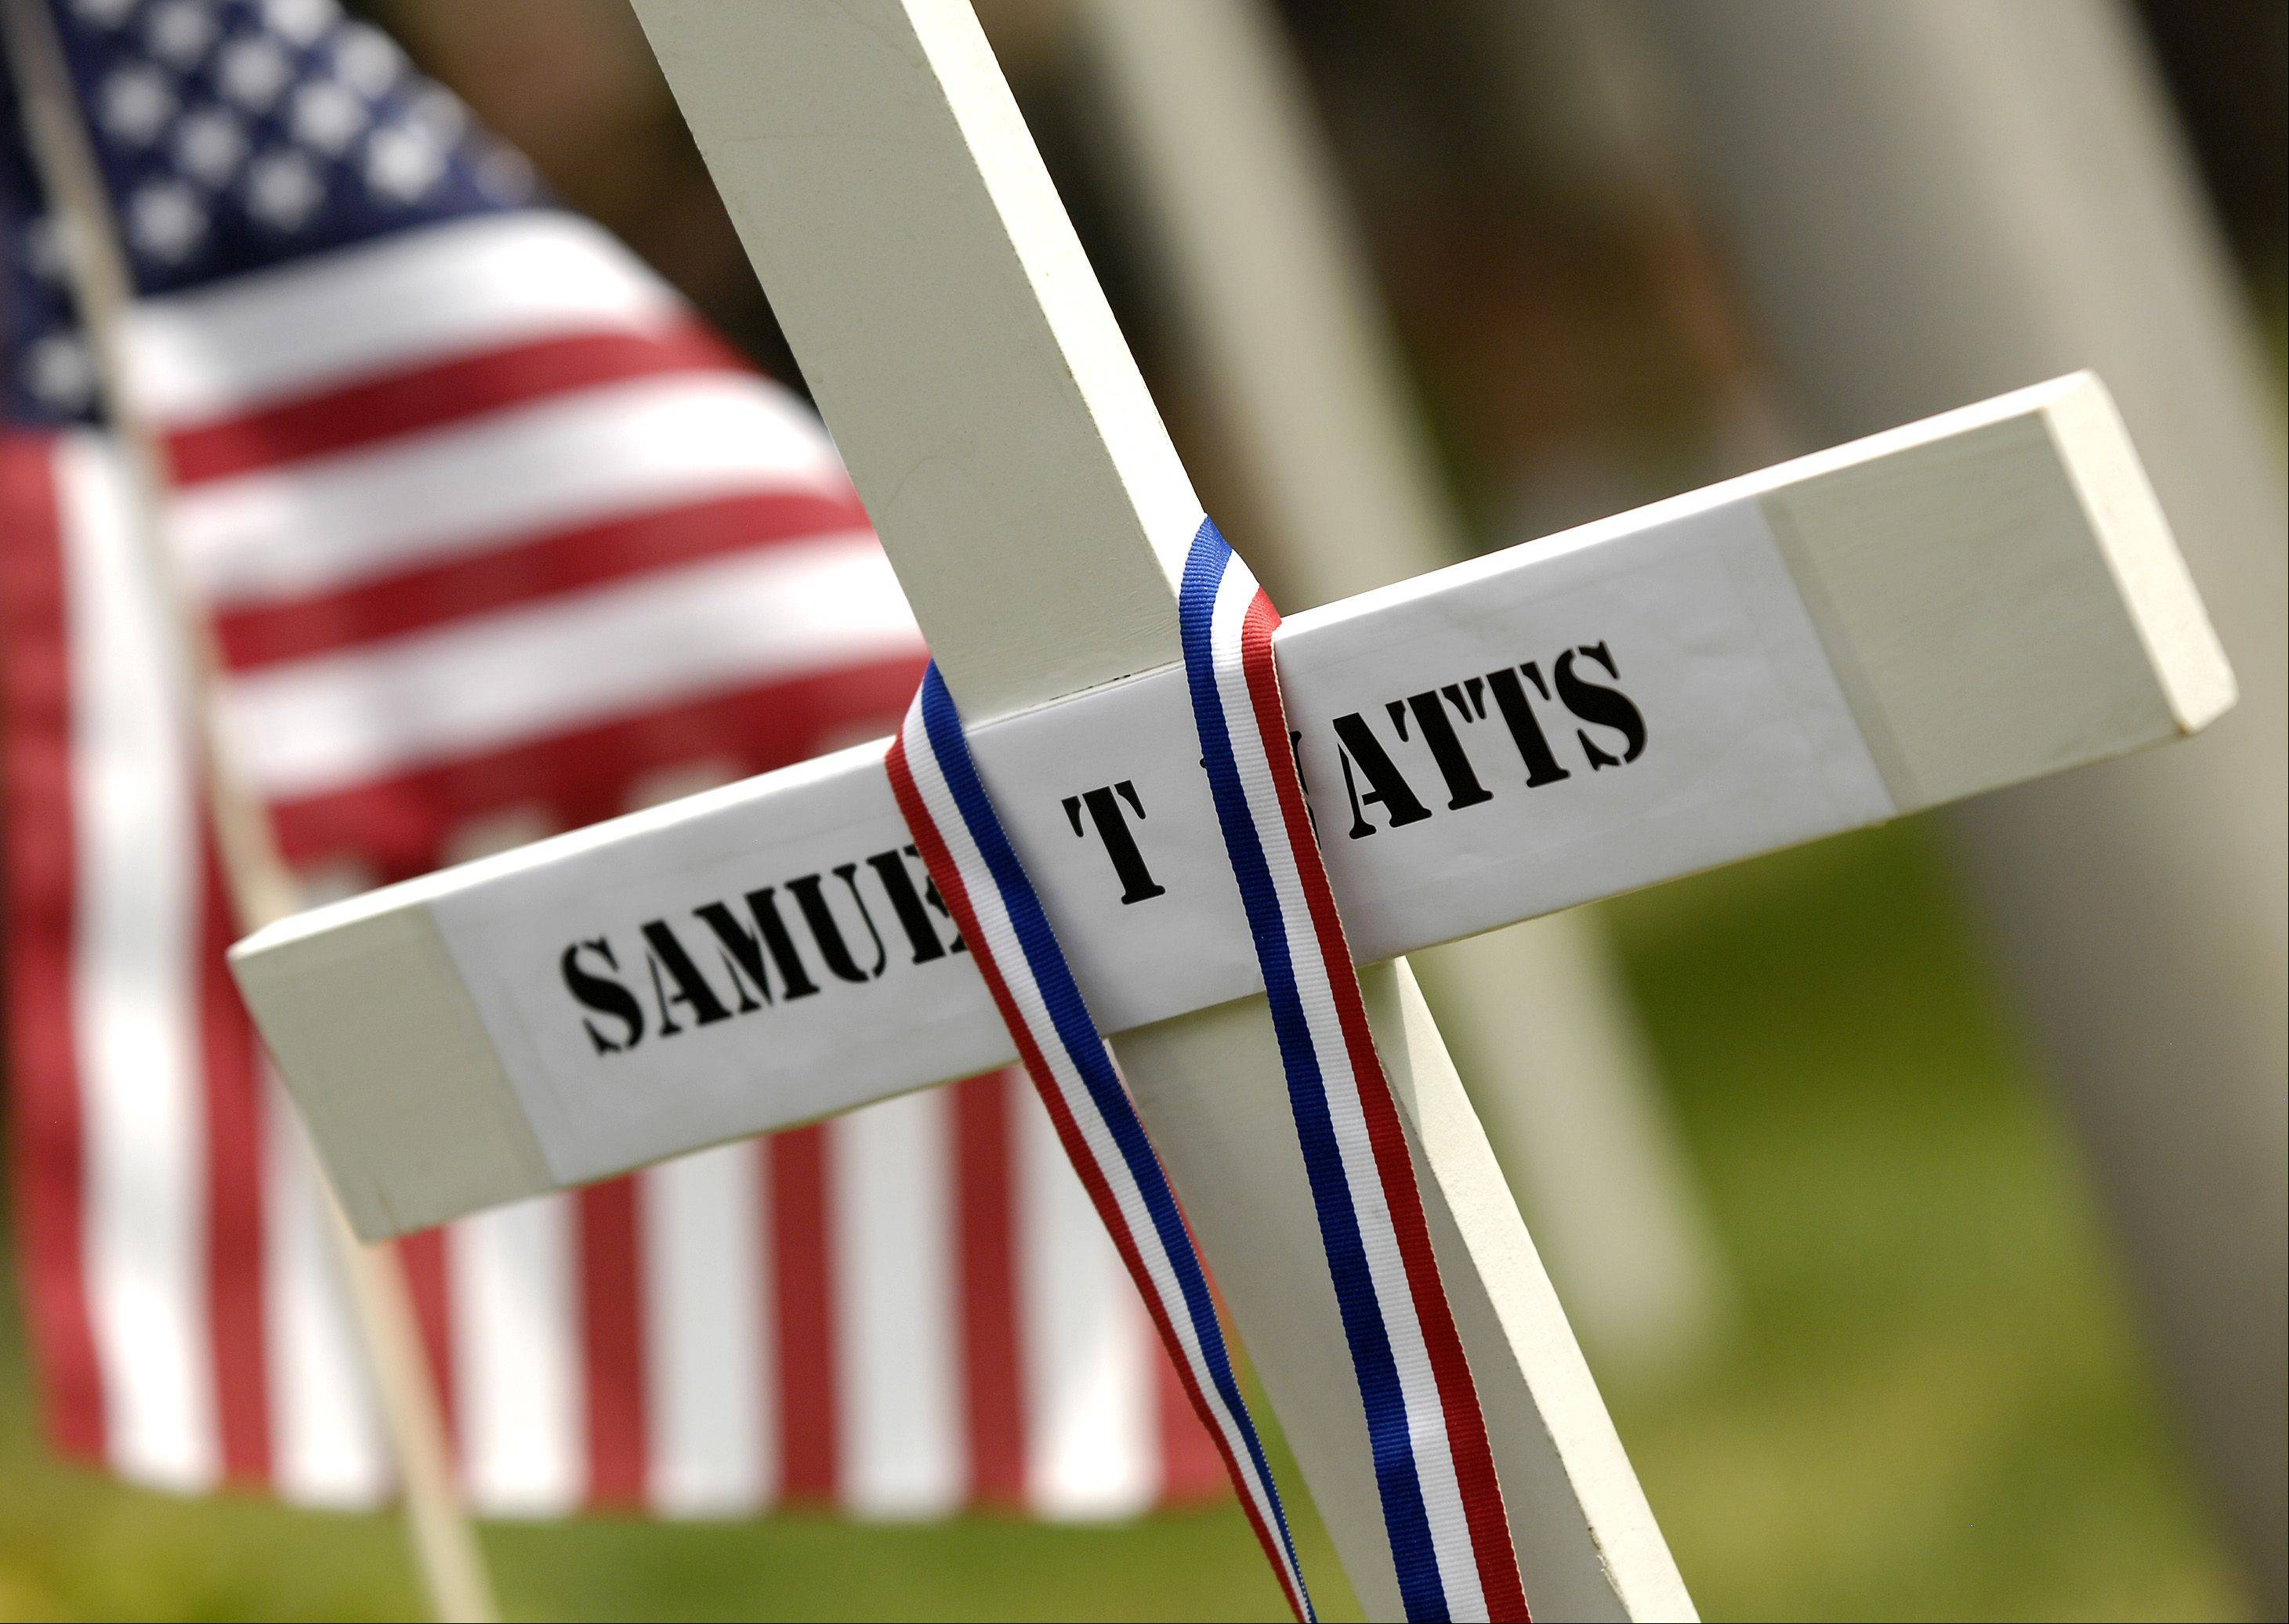 The wooden cross in honor of U.S. Army Spc. Samuel Watts, who died Saturday from injuries he suffered last month from a roadside bomb in Afghanistan, was placed in the Wheaton Cemetery by members of American Legion and VFW.